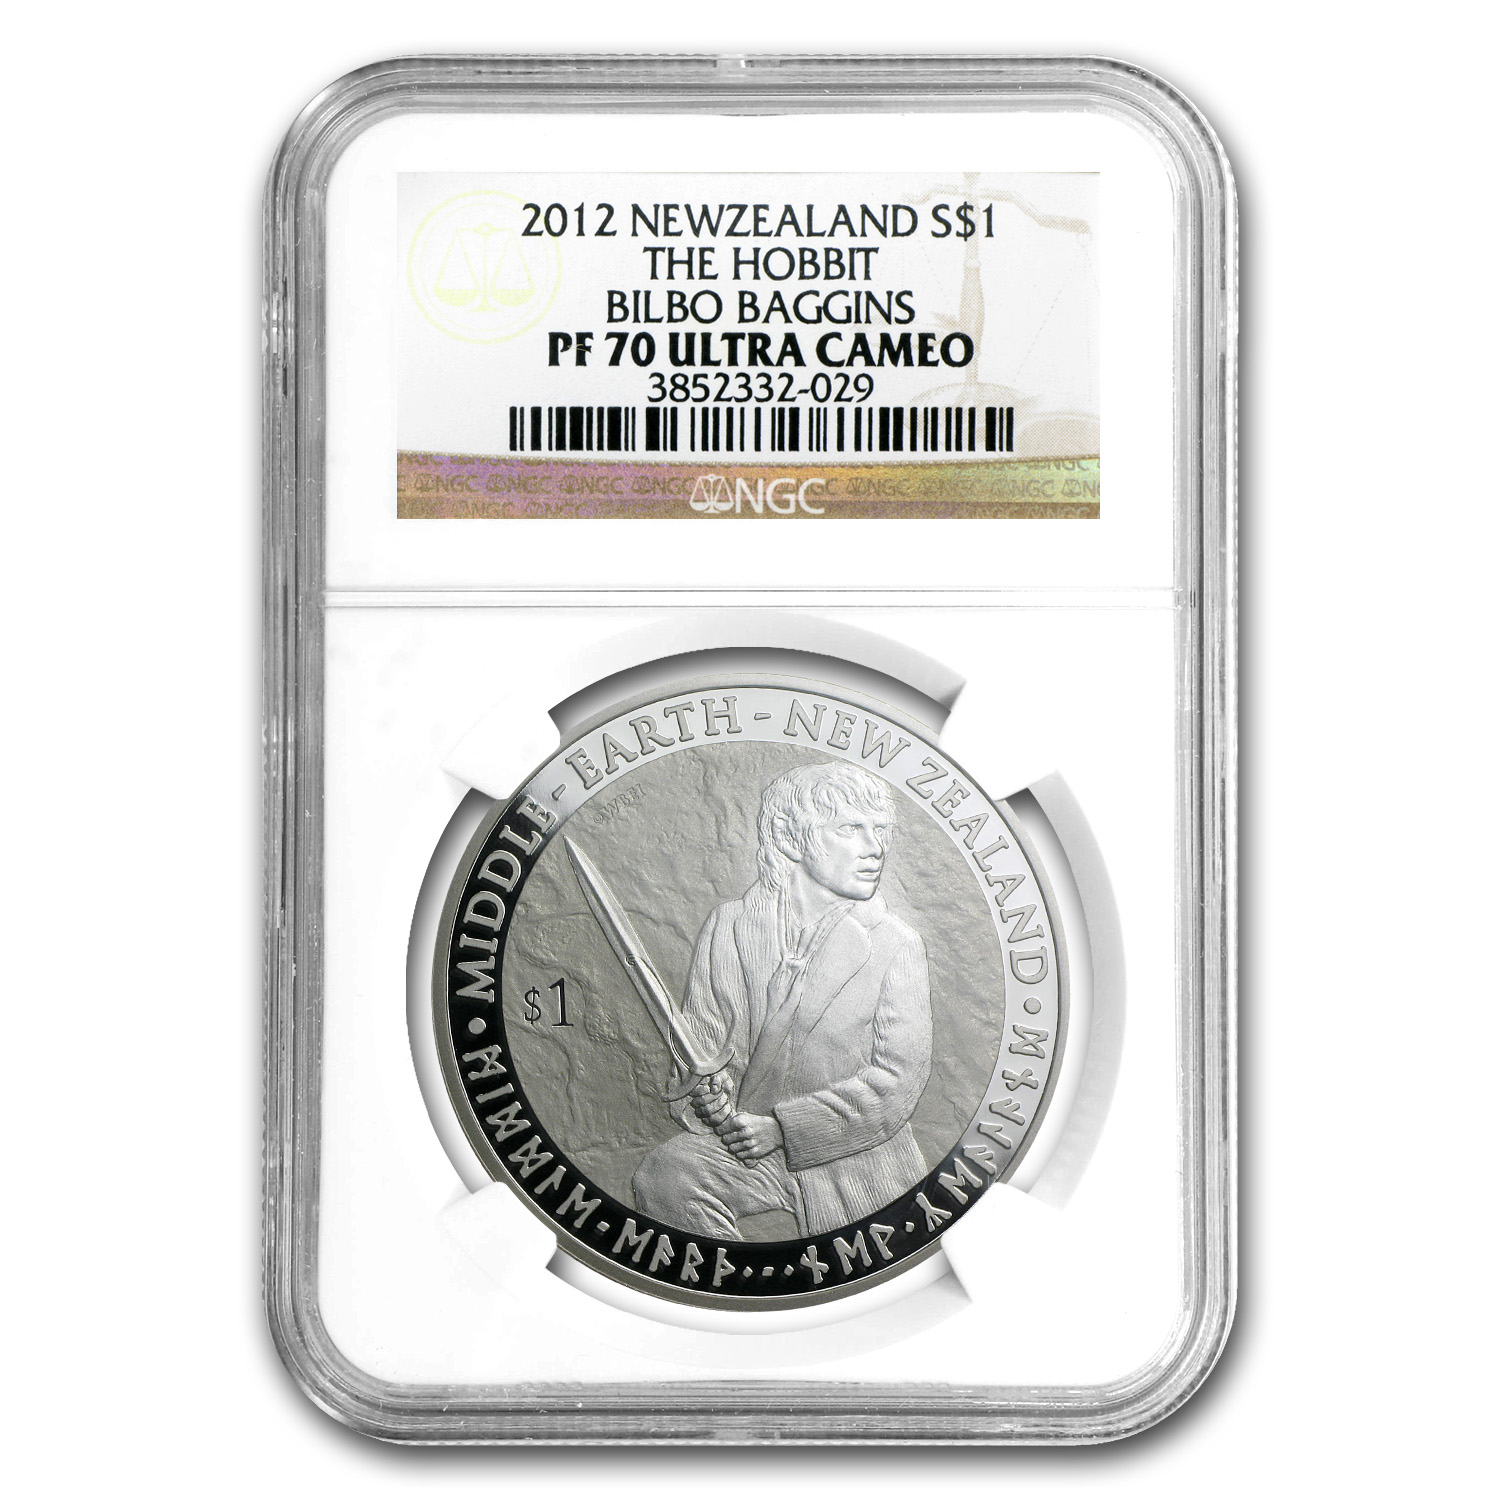 2012 New Zealand 1 oz Silver $1 Bilbo Baggins PF-70 NGC